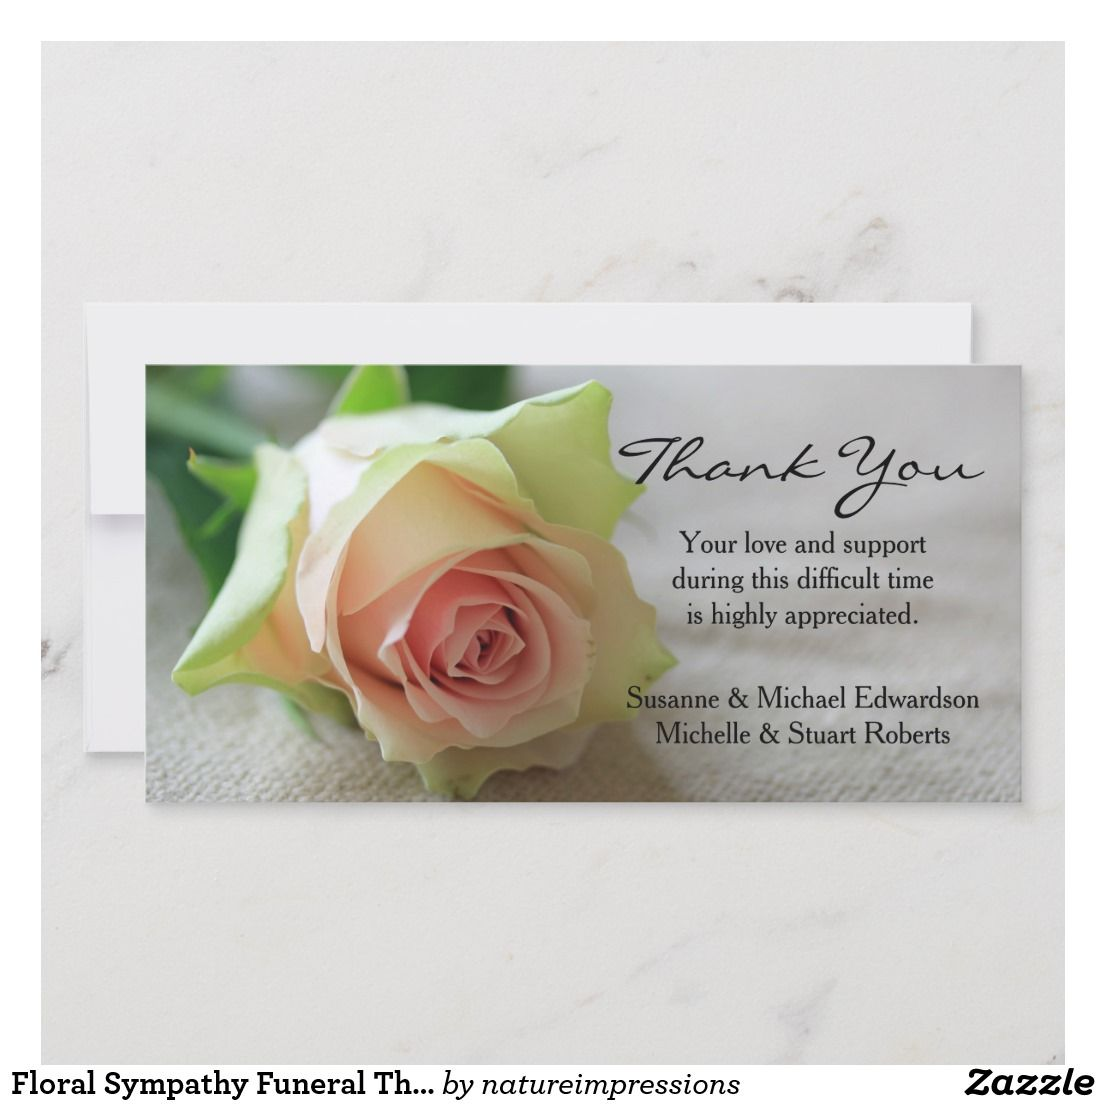 Floral Sympathy Funeral Thank You Pink Rose